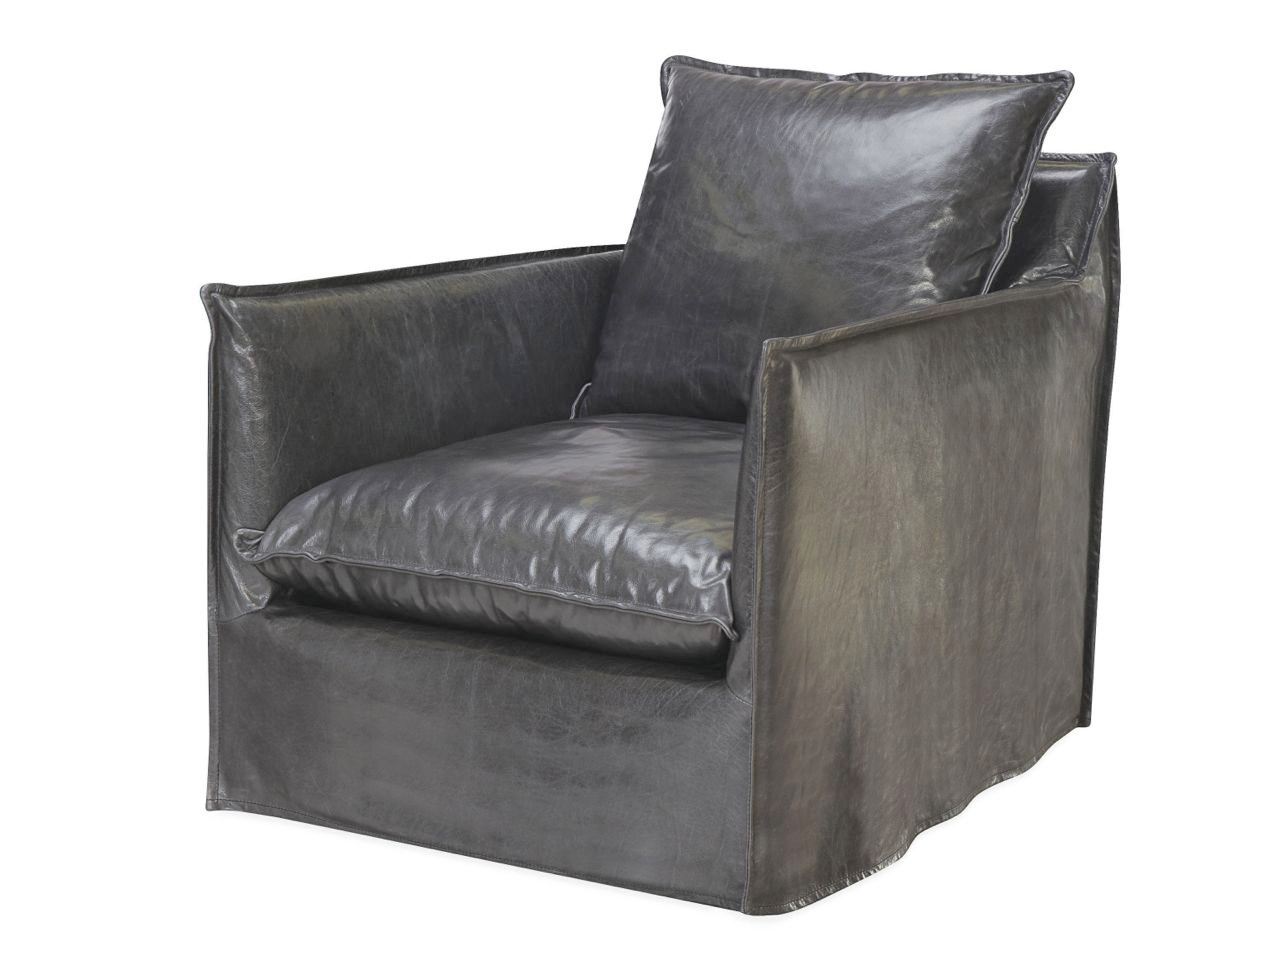 ... Riley Leather Slipcovered Chair. Image 1